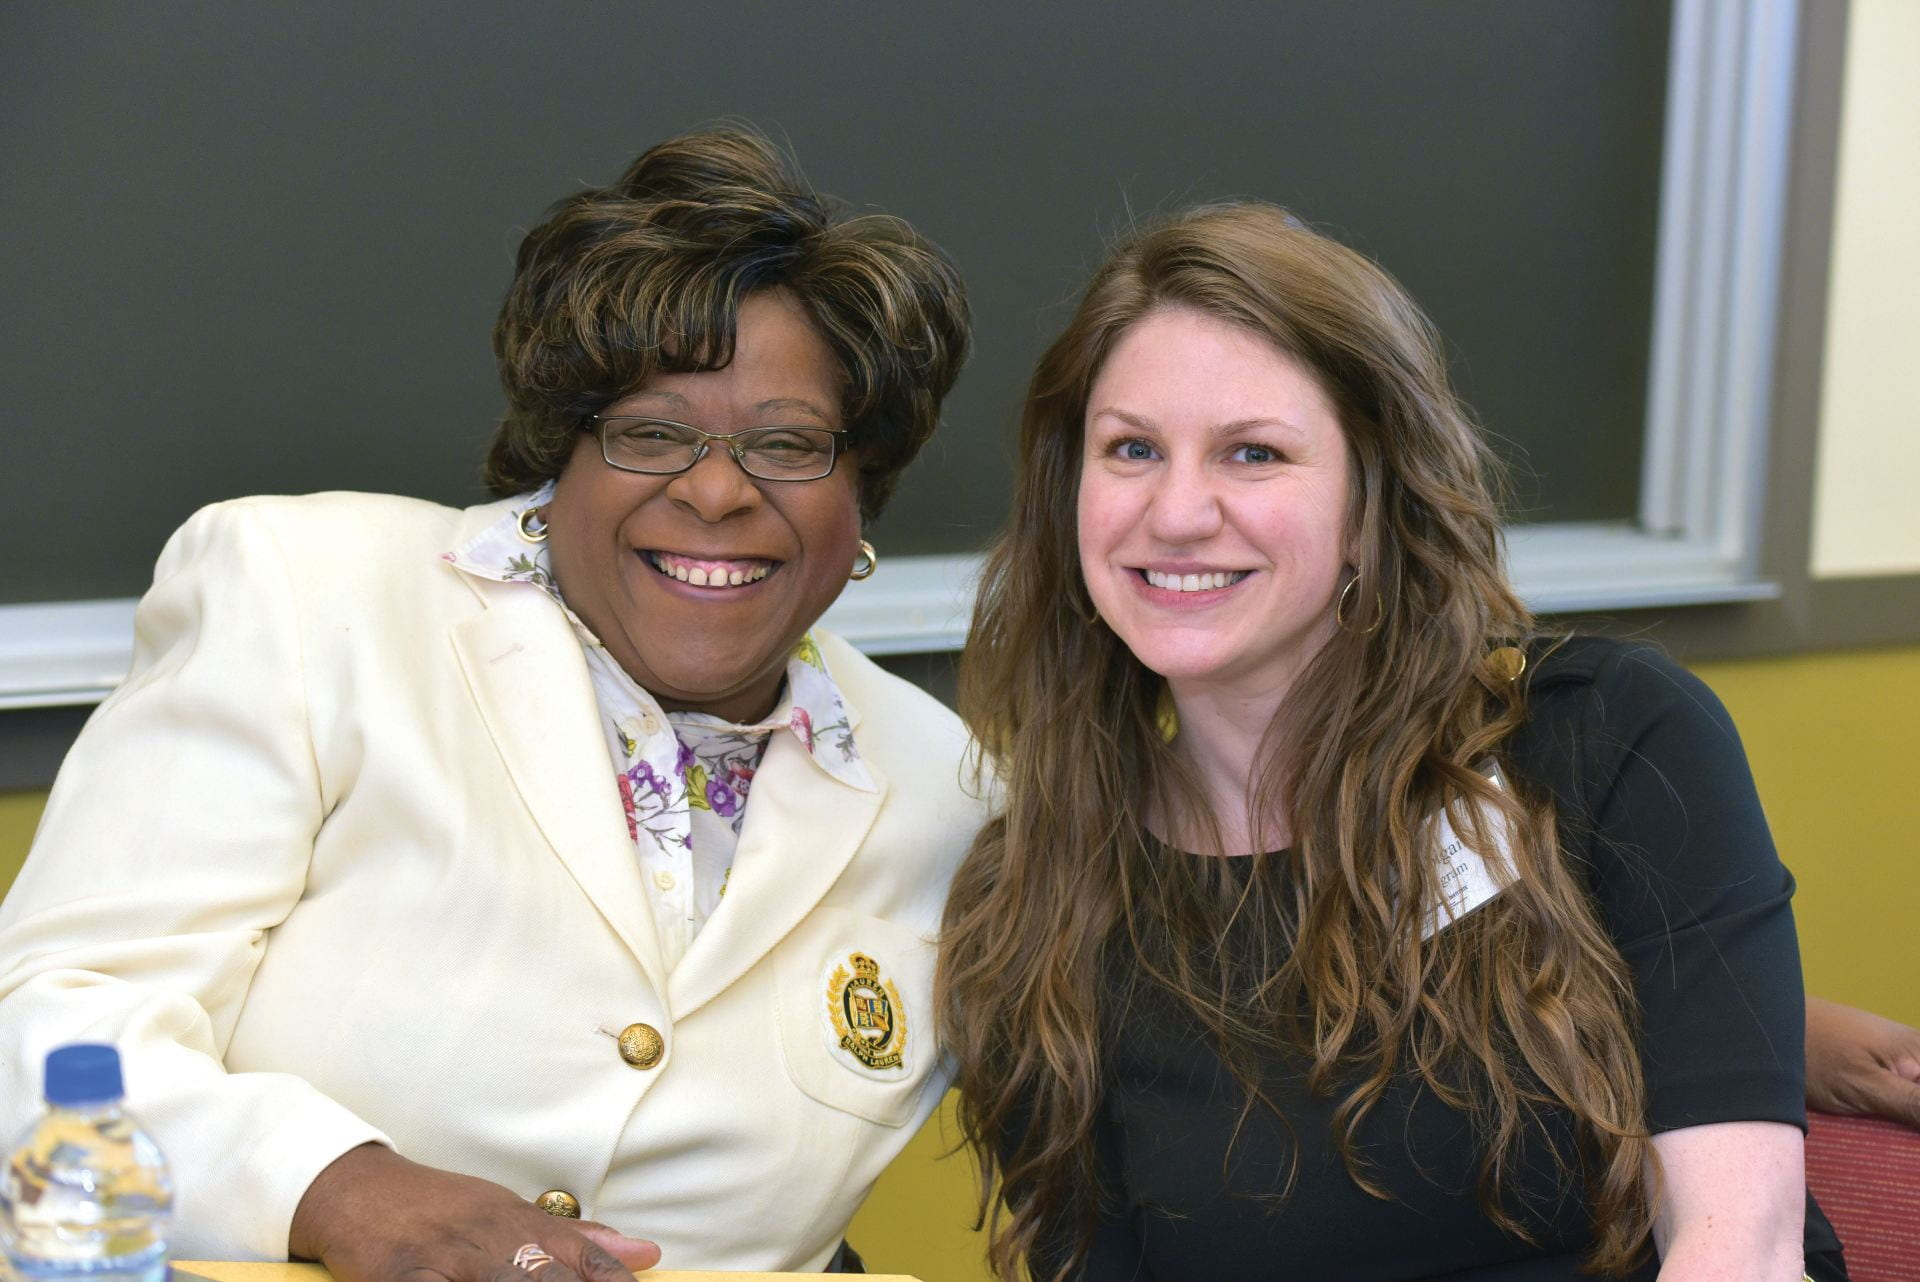 Committee member Valarie King-Bailey with Abigail Ingram